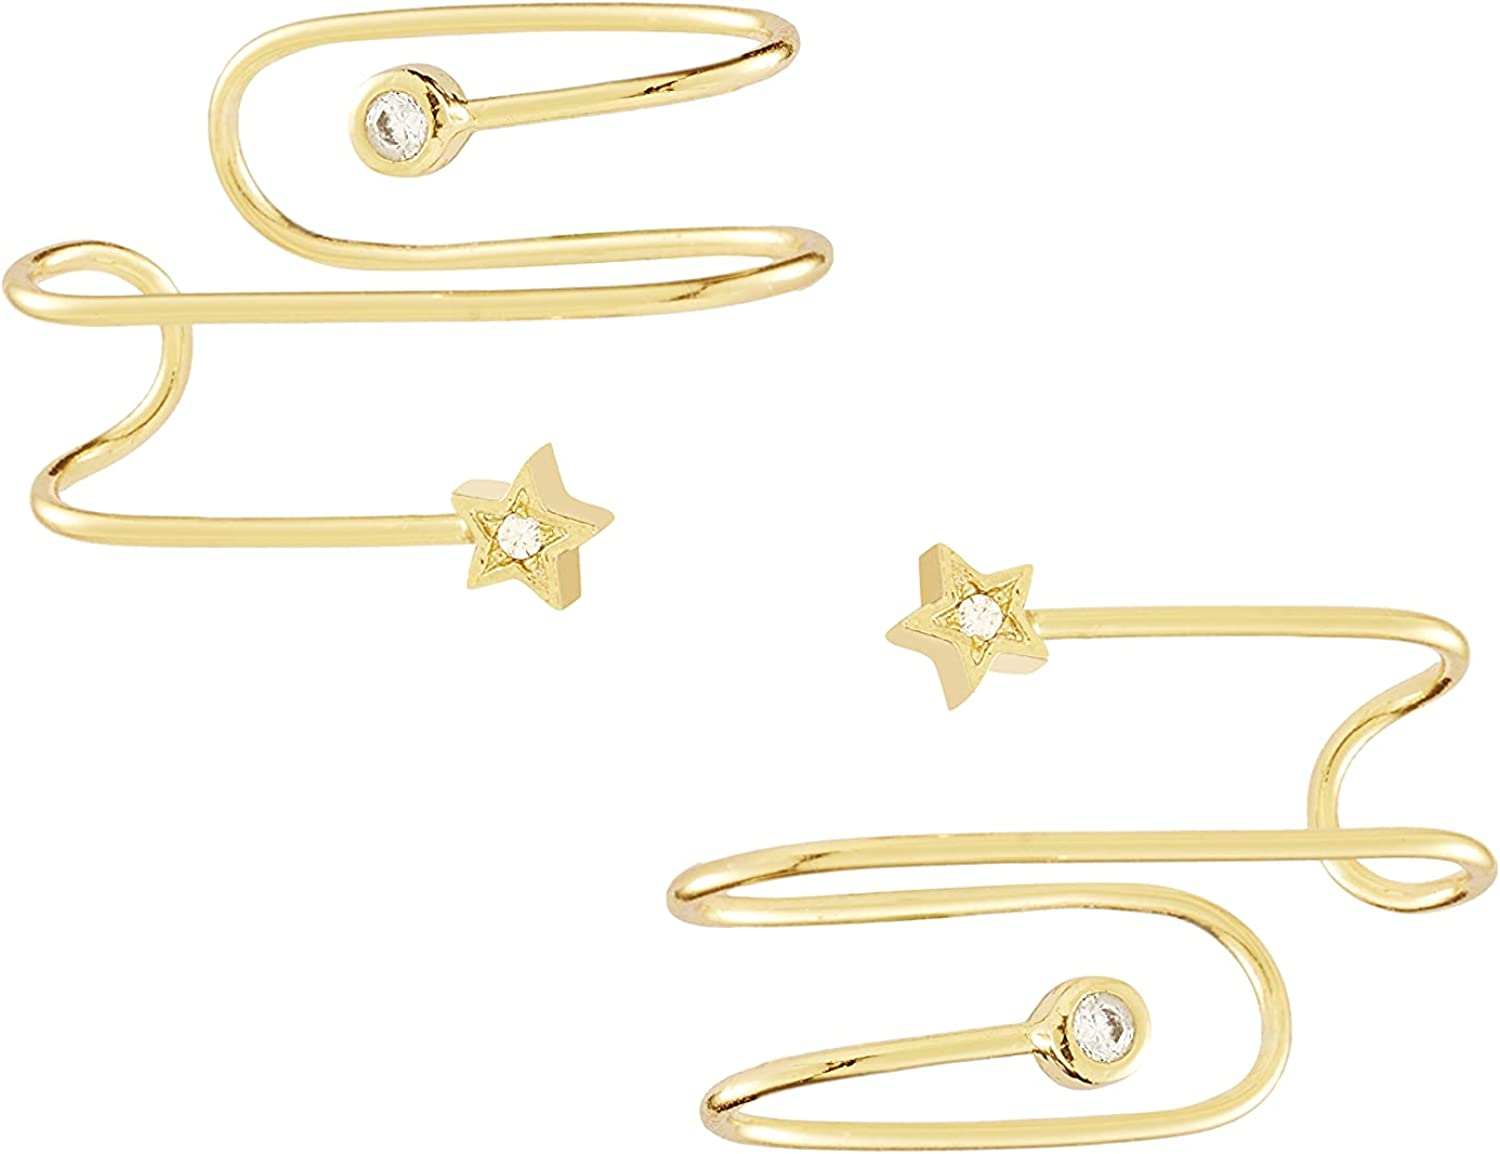 Wanderlust + Co In The Stars Gold Ear Cuffs - 14K Real Gold Plated Jewelry